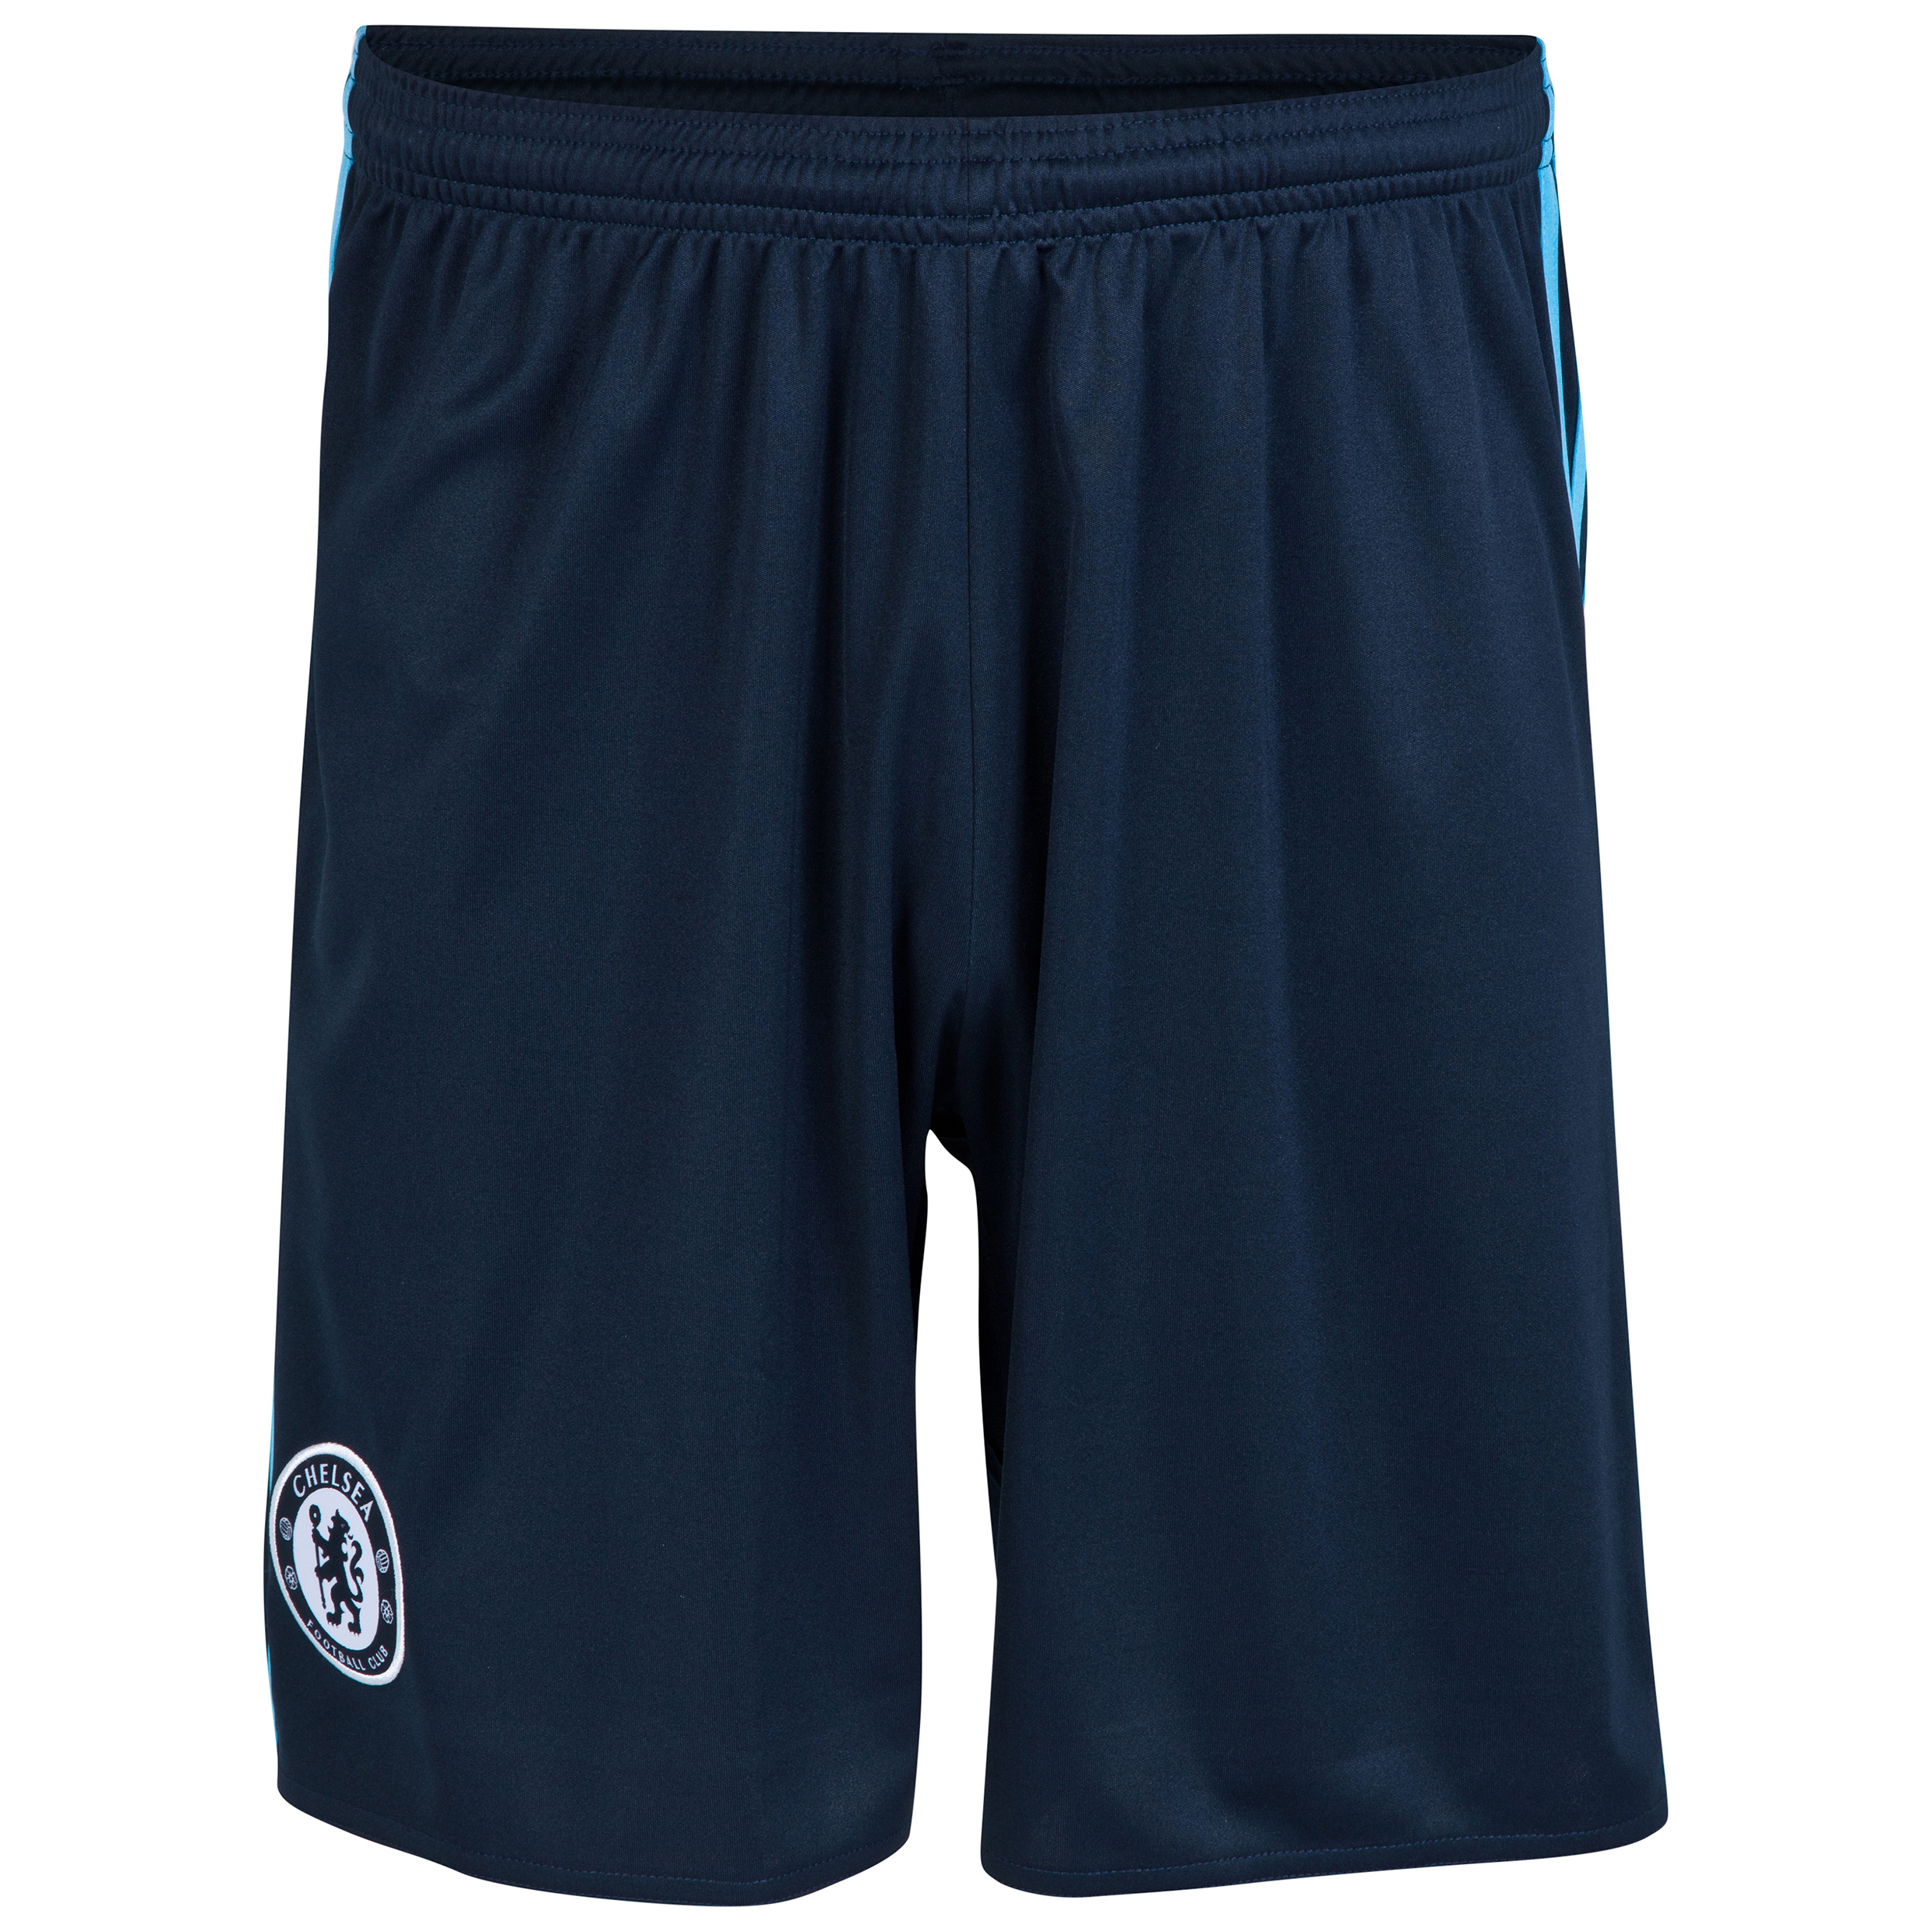 Chelsea Third Shorts 2014/15 - Kids  Young Chelsea fans can support their favourite team with pride and style in these dark blue2014/15 Chelsea Third shorts.  Built with the team crest onone leg andcontrast three stripesdown the sides, your childcan display team pride and athleticstyle whenthey wear these Chelsea Kids Third Shorts.  Benefits of these ChelseaThird Shorts •adiZero lightweight technology which promises lightweight comfort •Team crest on the leg for team pride and style •Contrast stripes for an athletic look